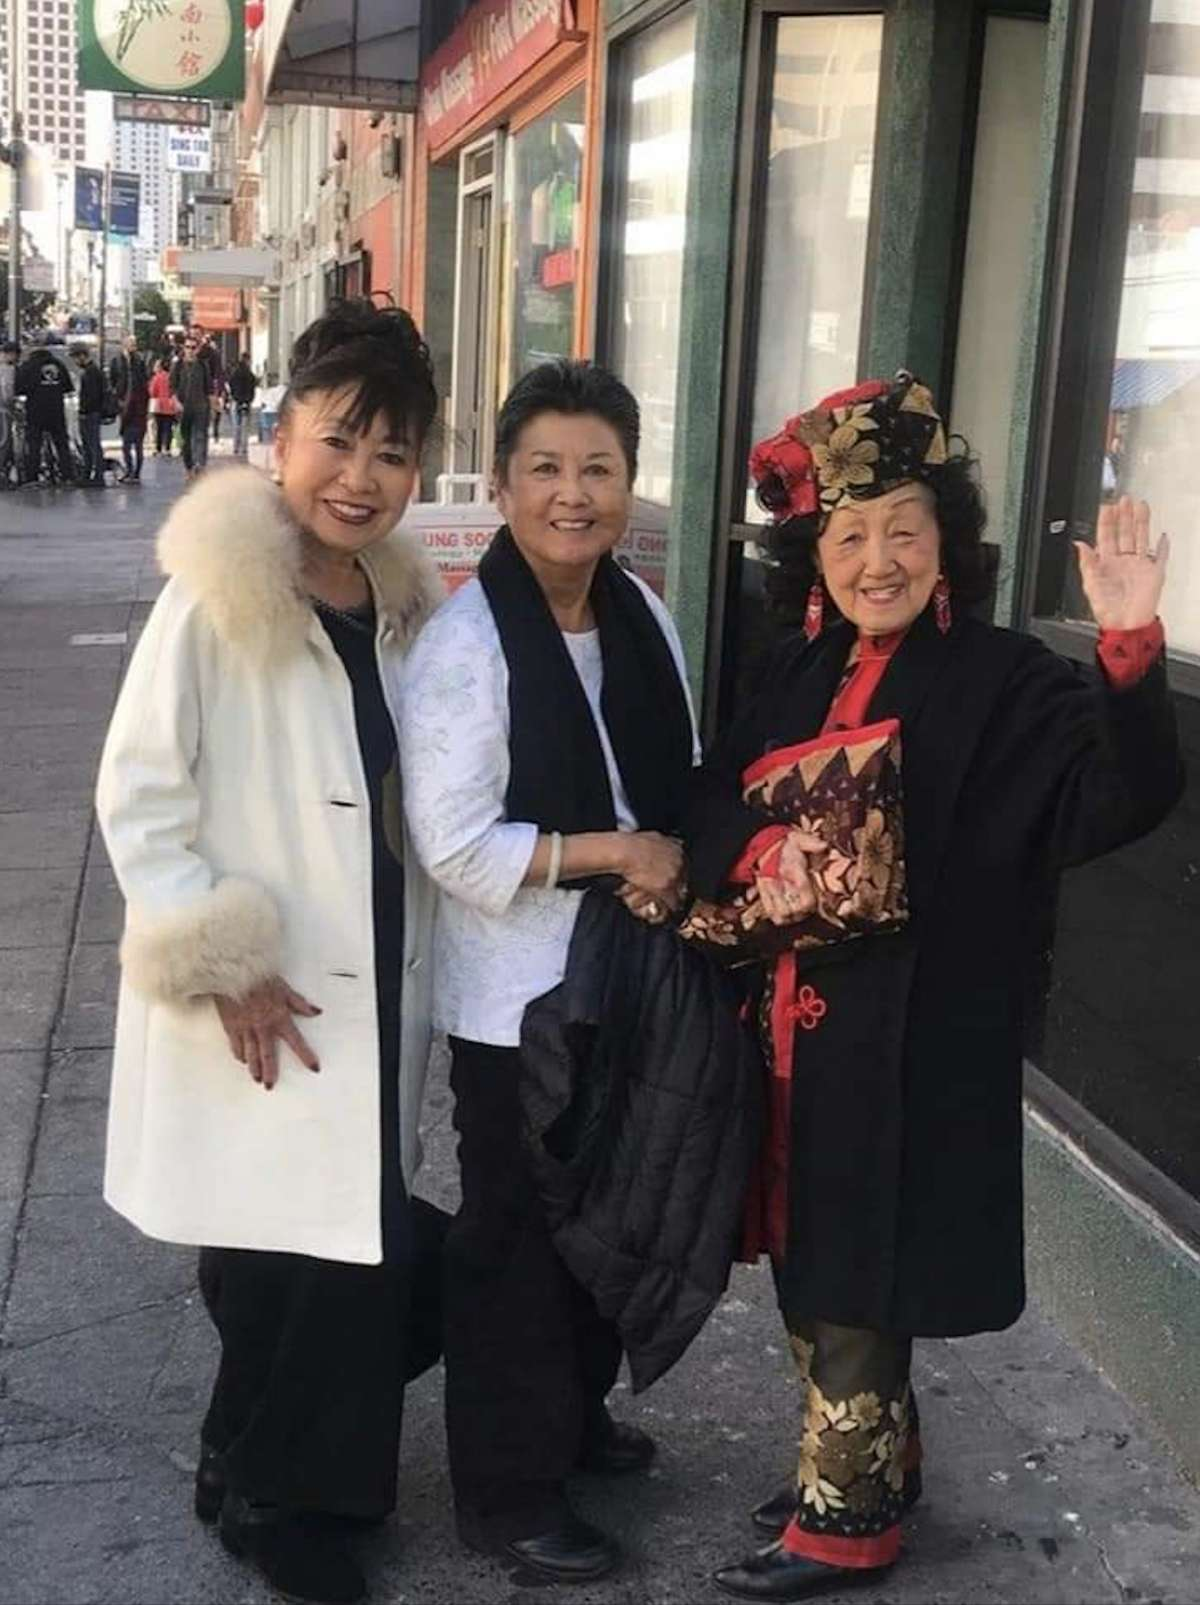 """From left to right: Patricia Nishimoto (a member of the Grant Avenue Follies), Shari Matsuura (Coby Yee's daughter) and Coby Yee in Chinatown, taken in 2019. """"Coby loved seeing me in her white leather coat,"""" said Nishimoto."""